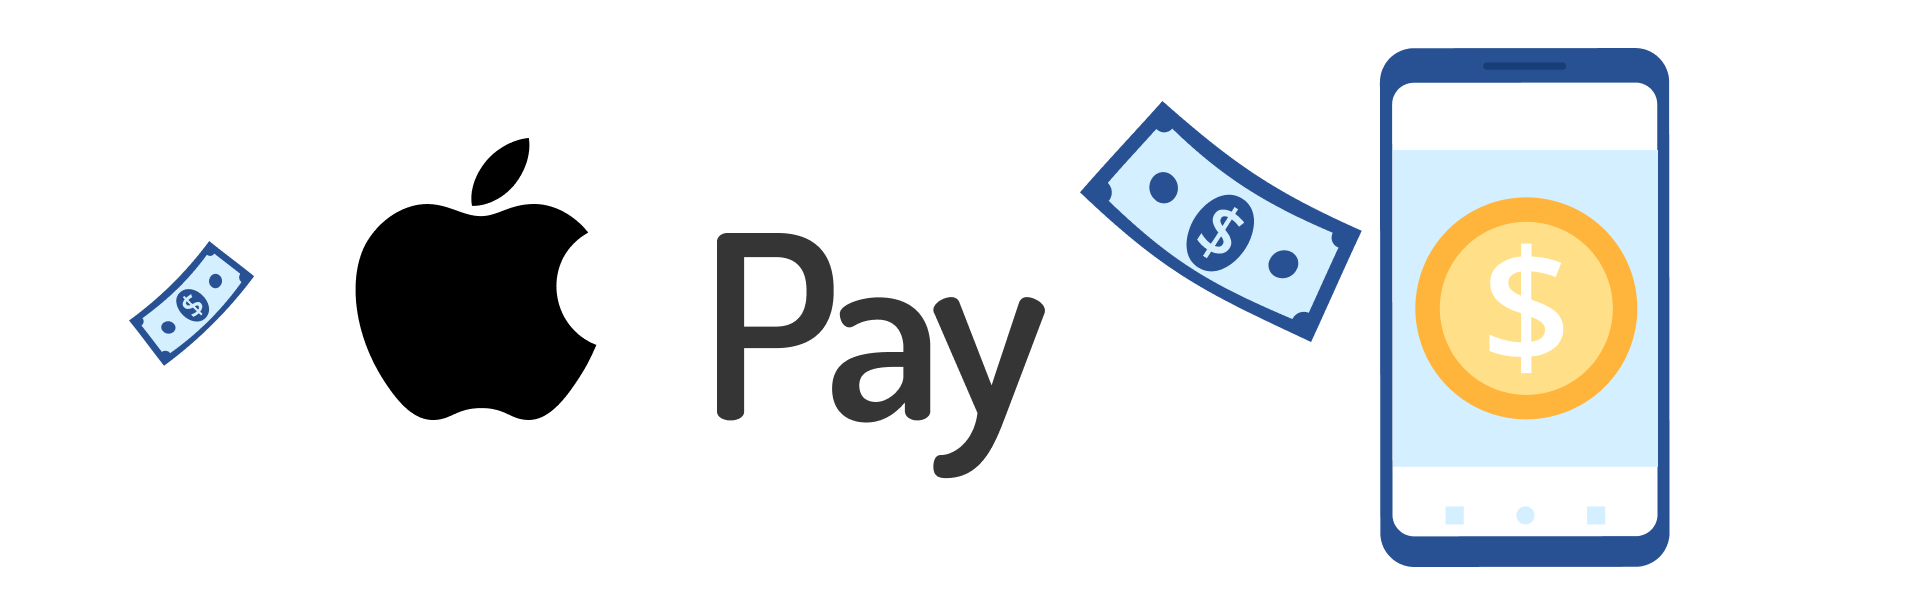 Go for Apple Pay if you seek the best PayPal alternatives for iOS.